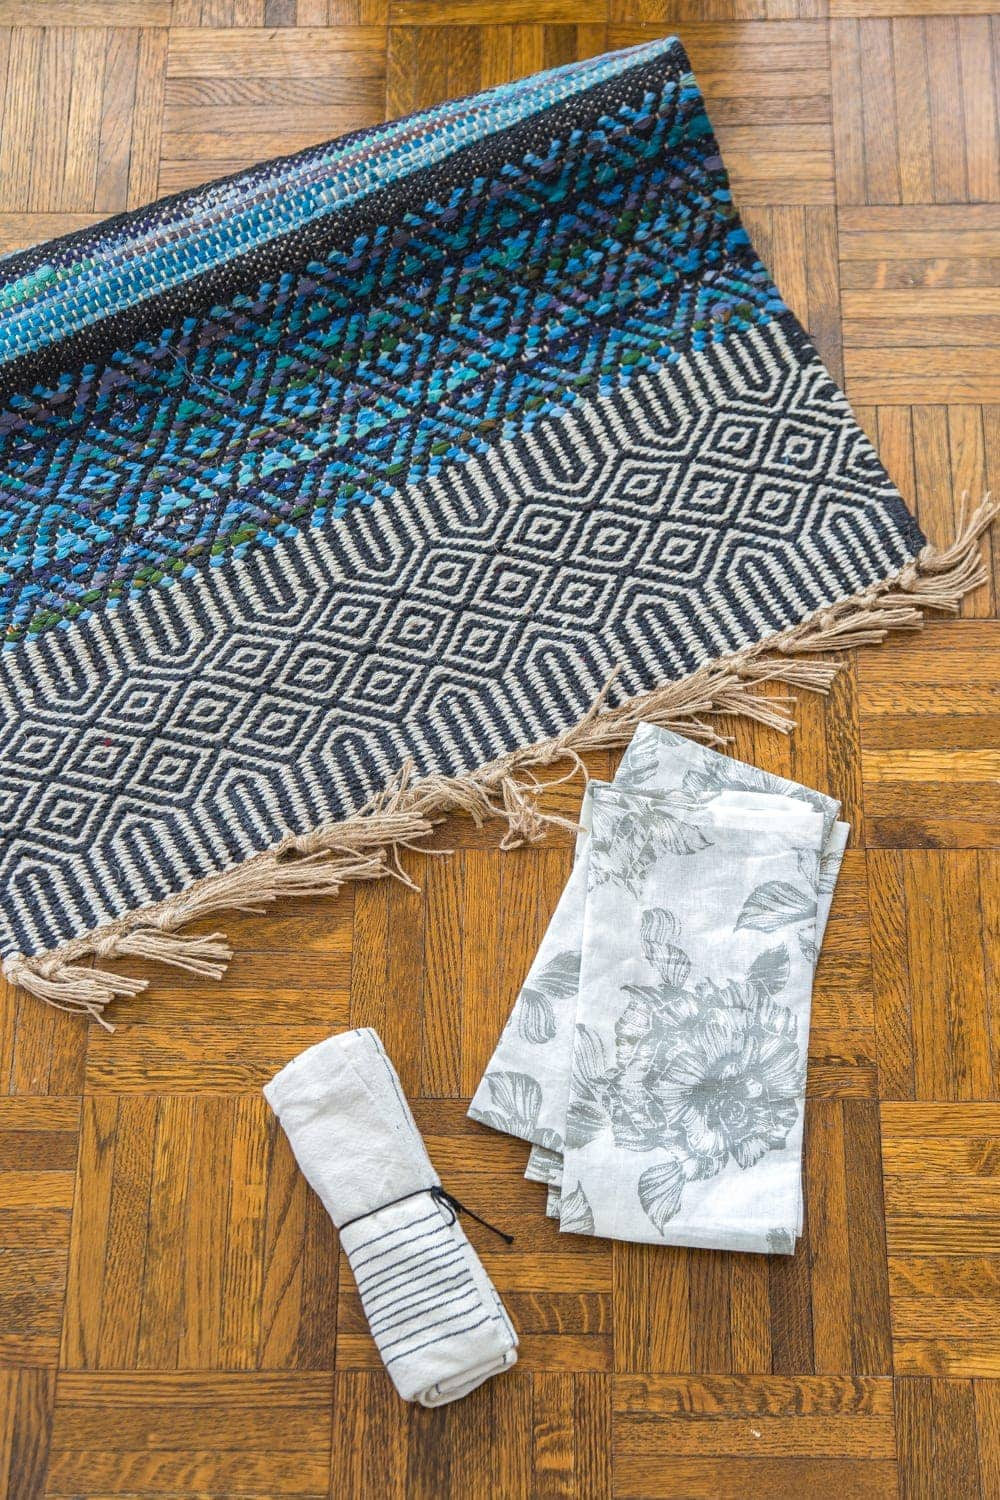 3 items you can repurpose into DIY no-sew throw pillows | rug, kitchen towel, napkins